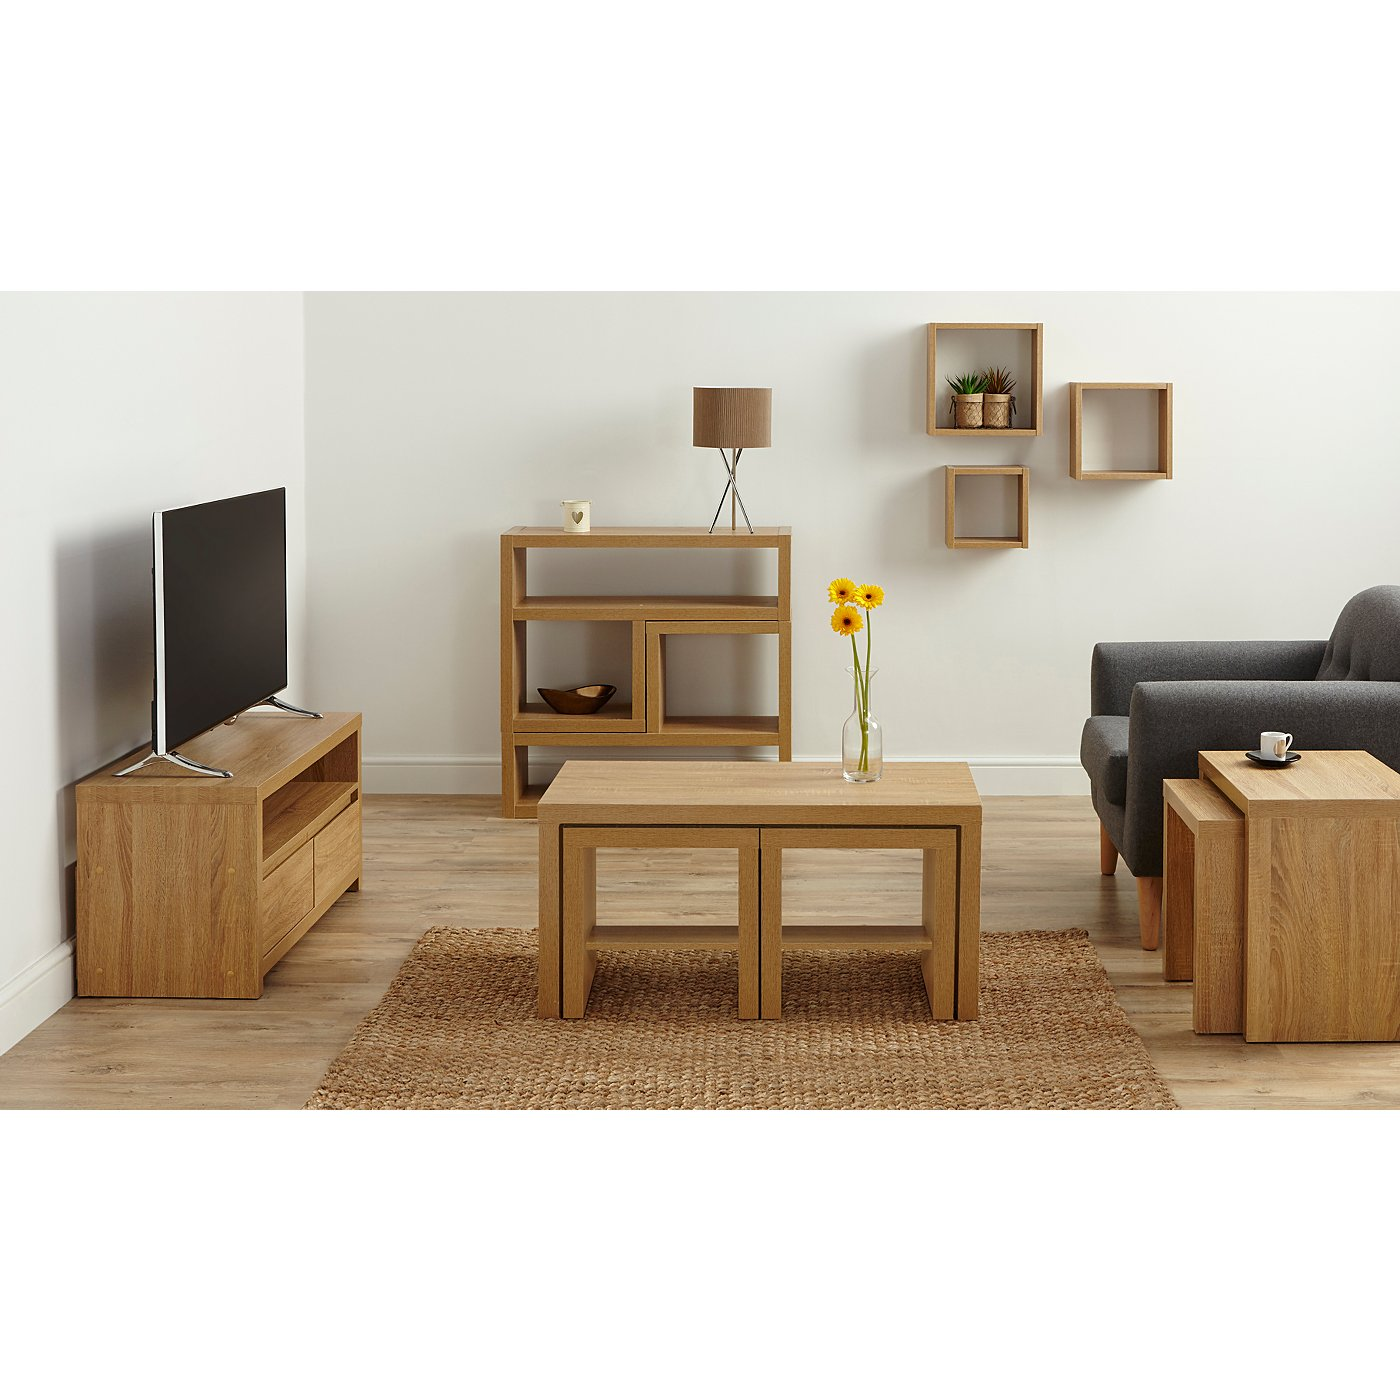 The Range Living Room Furniture George Home Leighton Living Room Furniture Range Oak Effect